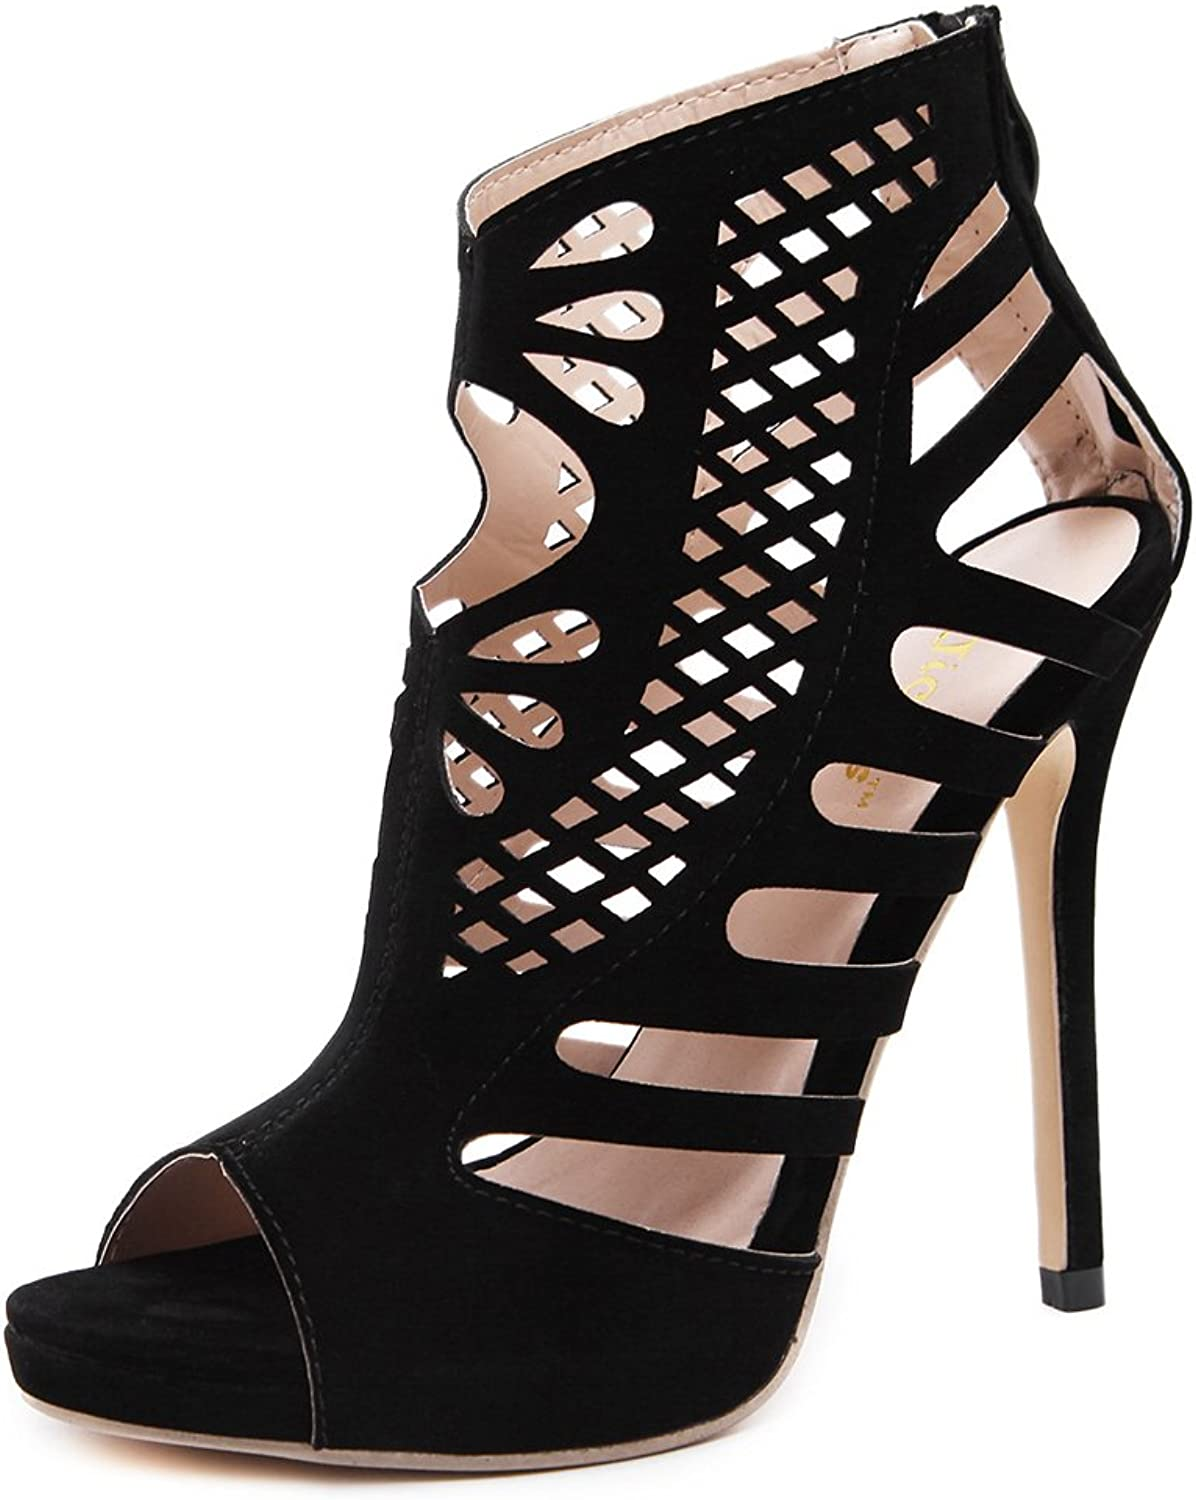 Btrada Sexy Hollow High Heel Sandals for Women Fashion Peep Toe Boots Stiletto Dress shoes Party Pumps